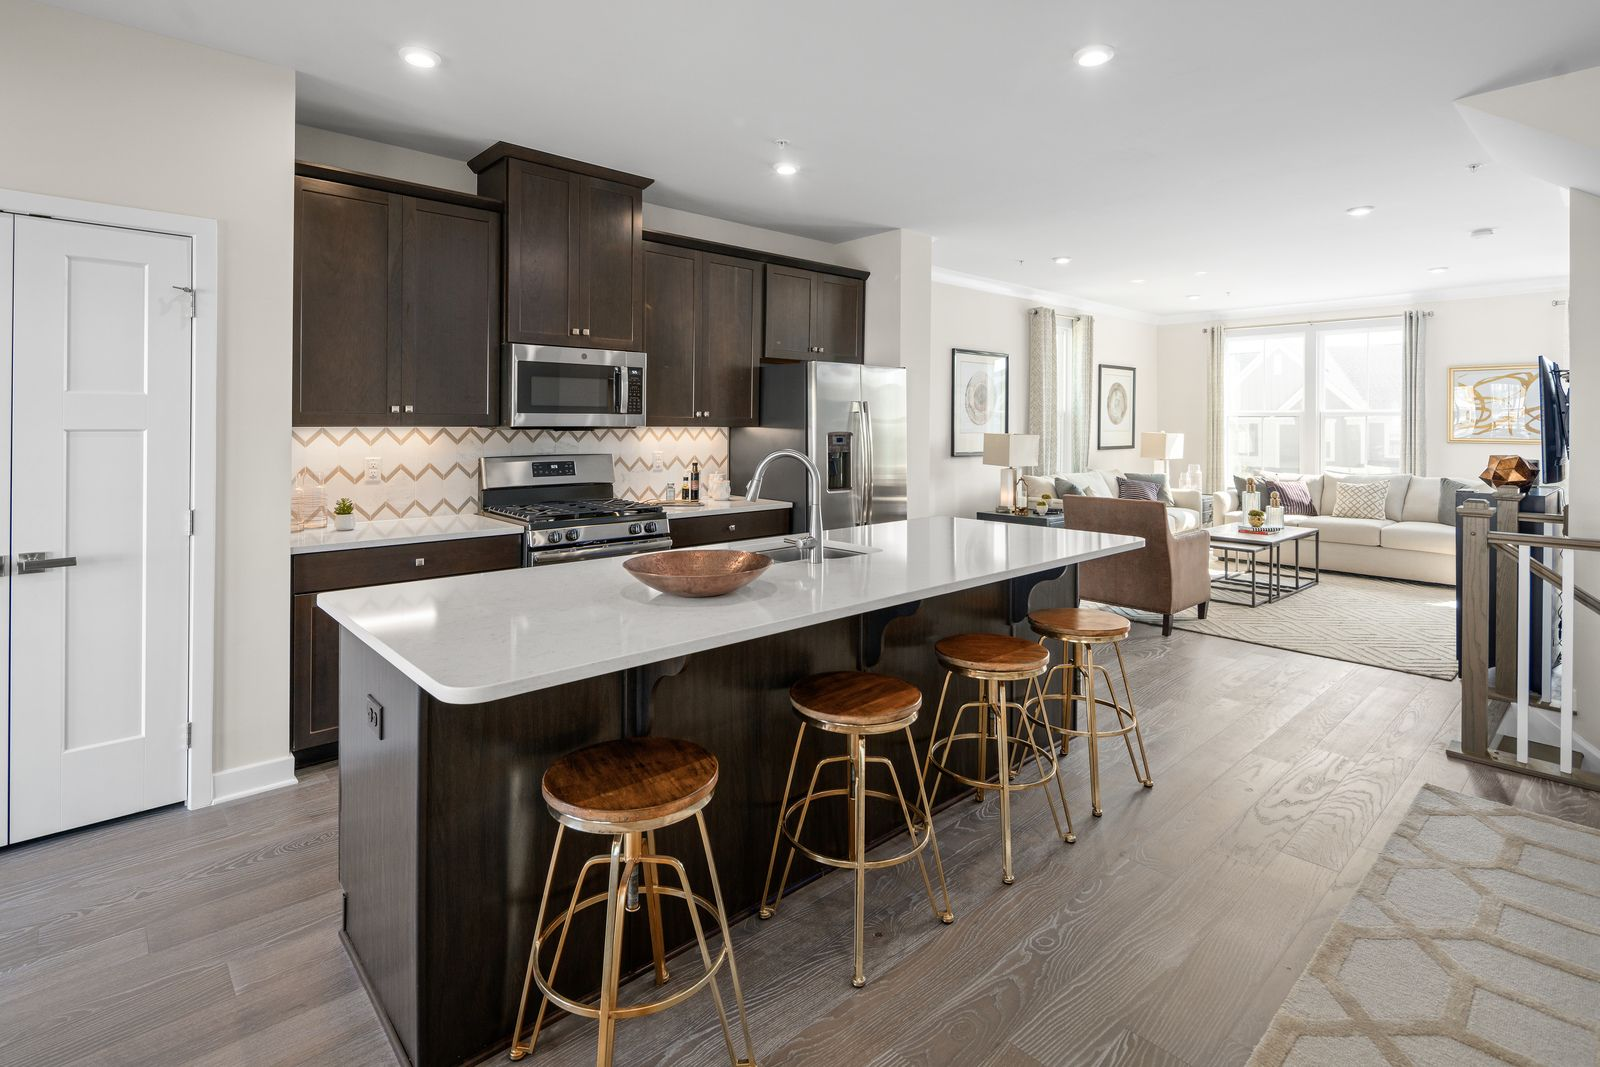 Kitchen featured in the Strauss E By Ryan Homes in Philadelphia, PA